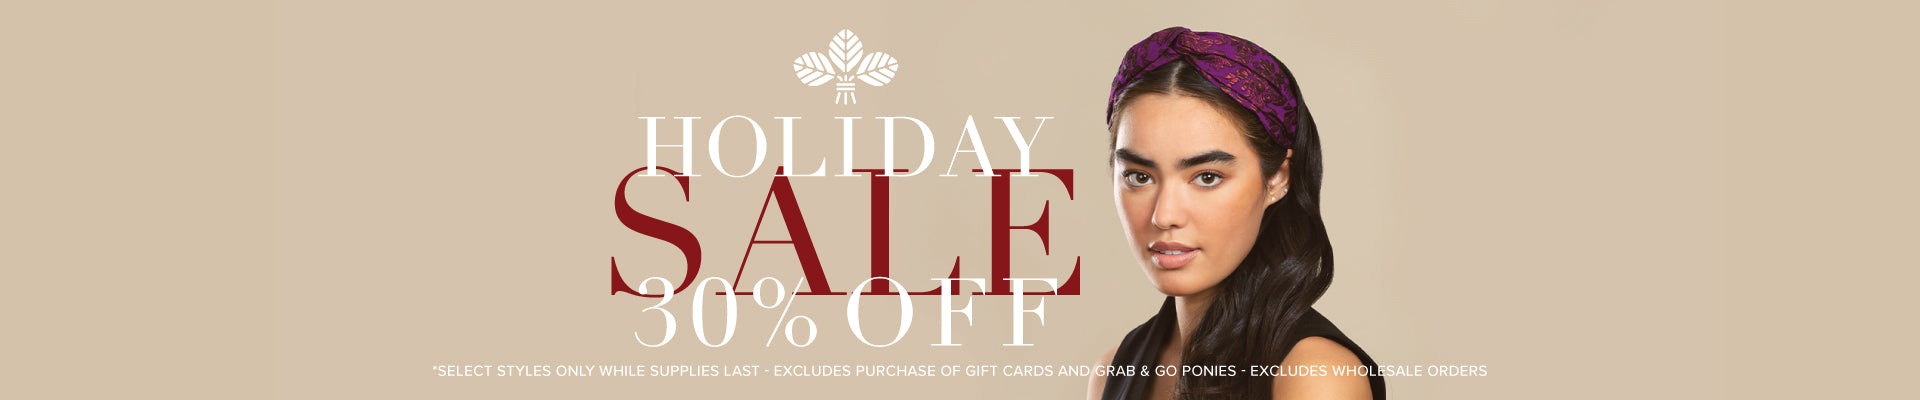 Holiday Sale on hair accessories